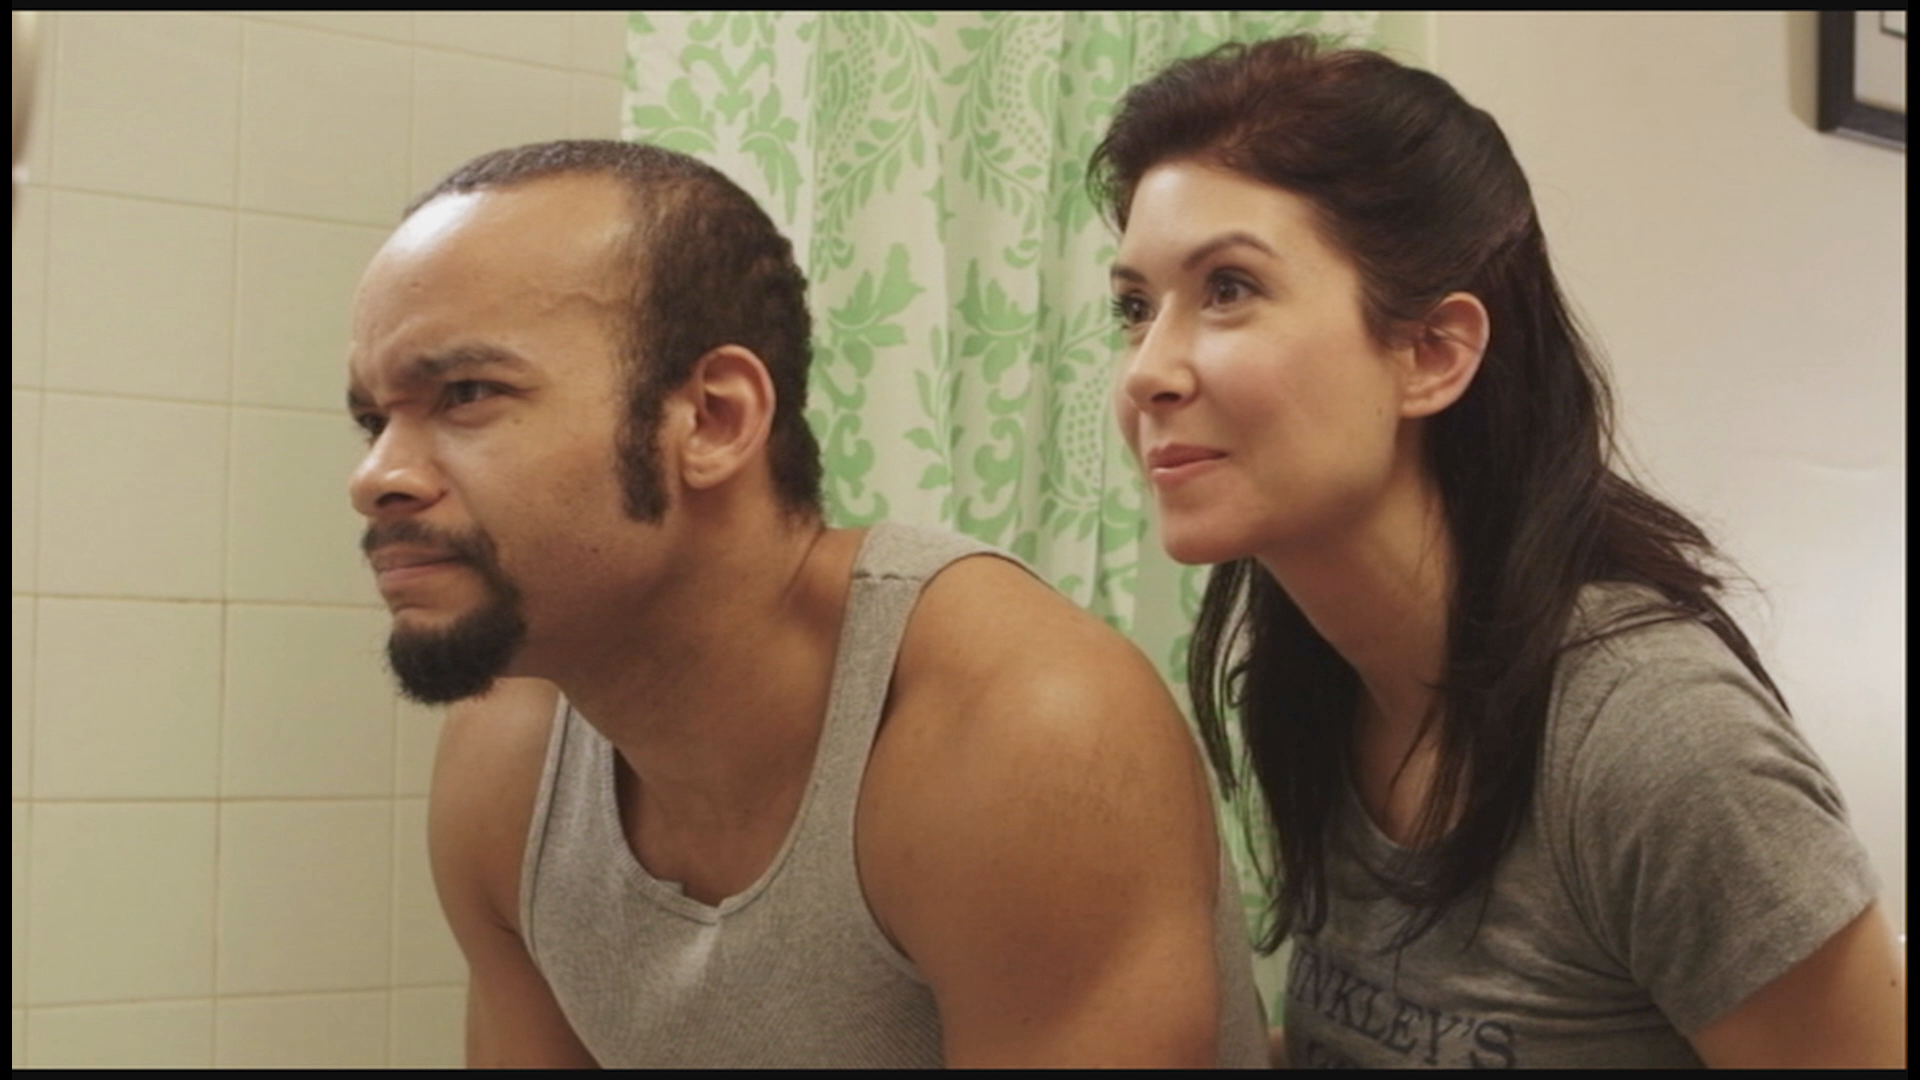 Breakfast in Bed - Marvin (LeMar McLean) and Brooke (Kate Chamuris) get ready for a night out.